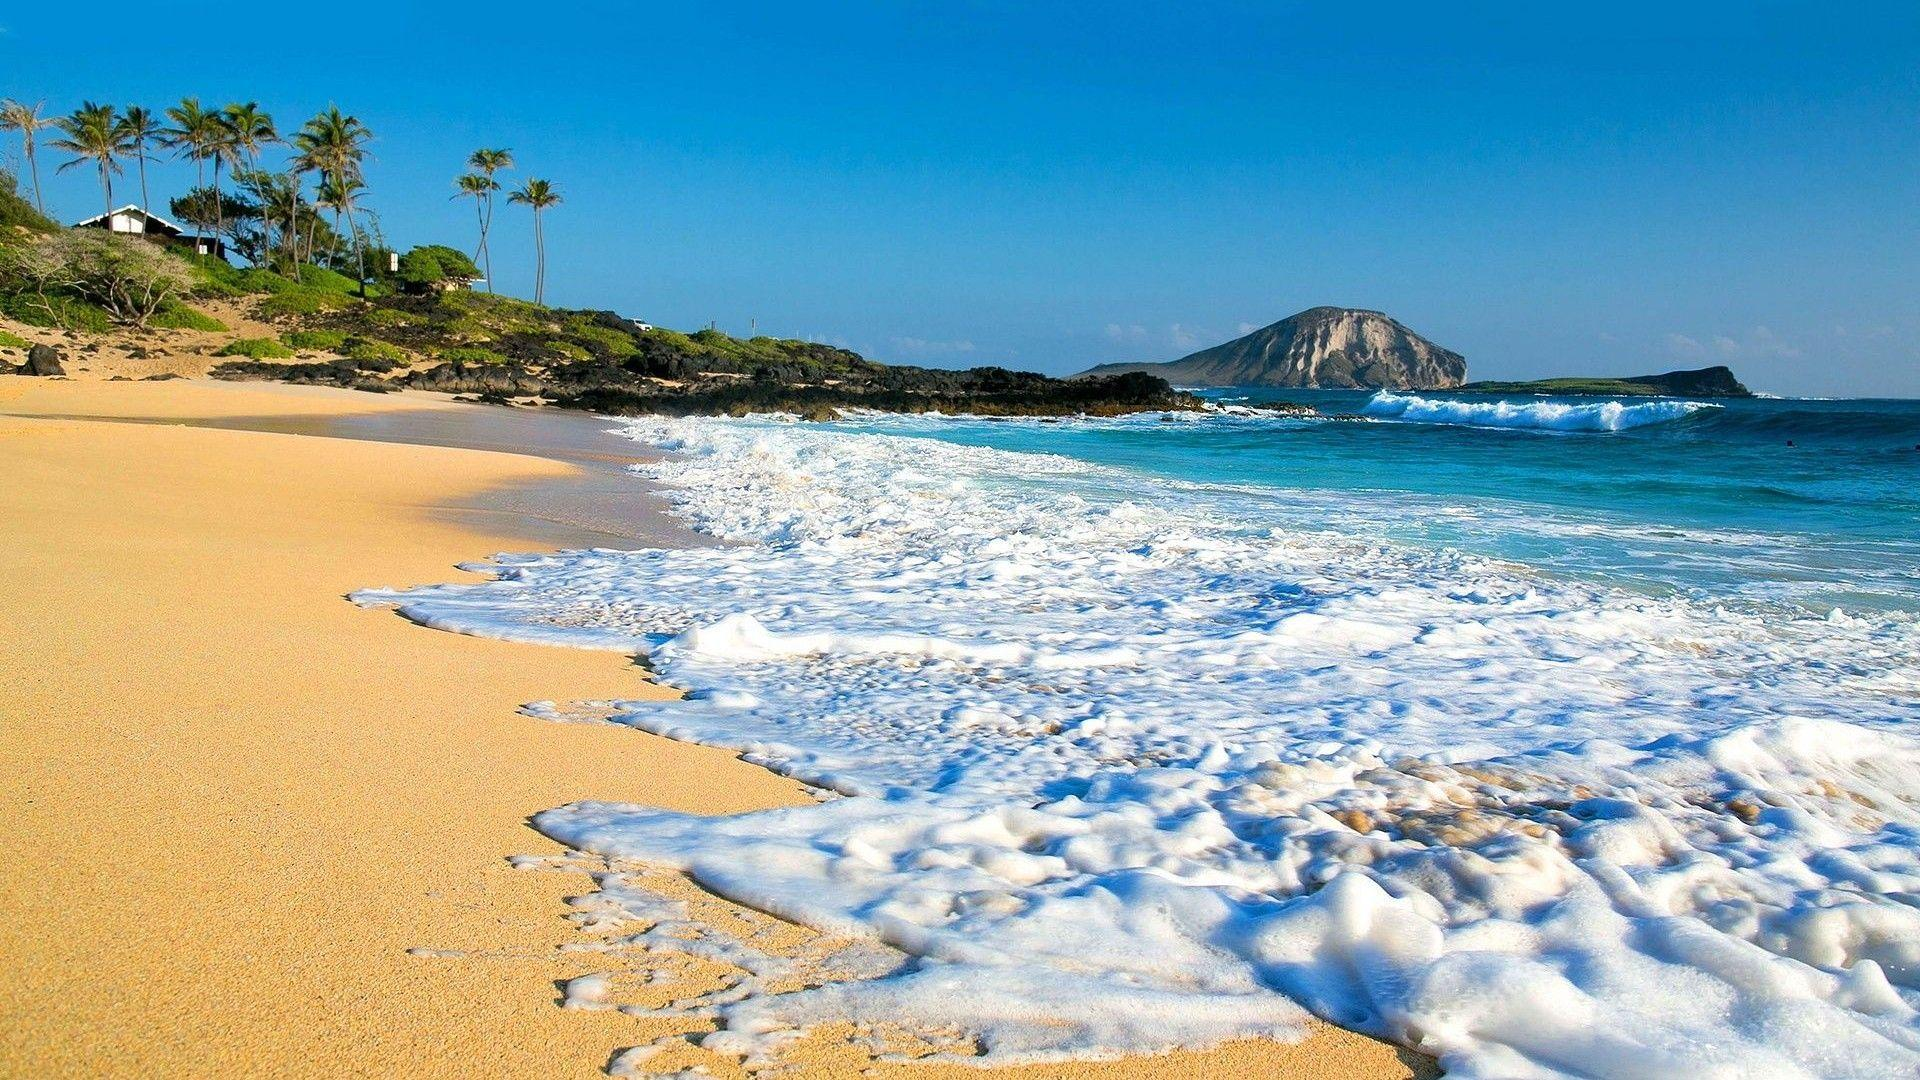 Hawaii Beach HD Wallpapers 1920x1080 For Desktop